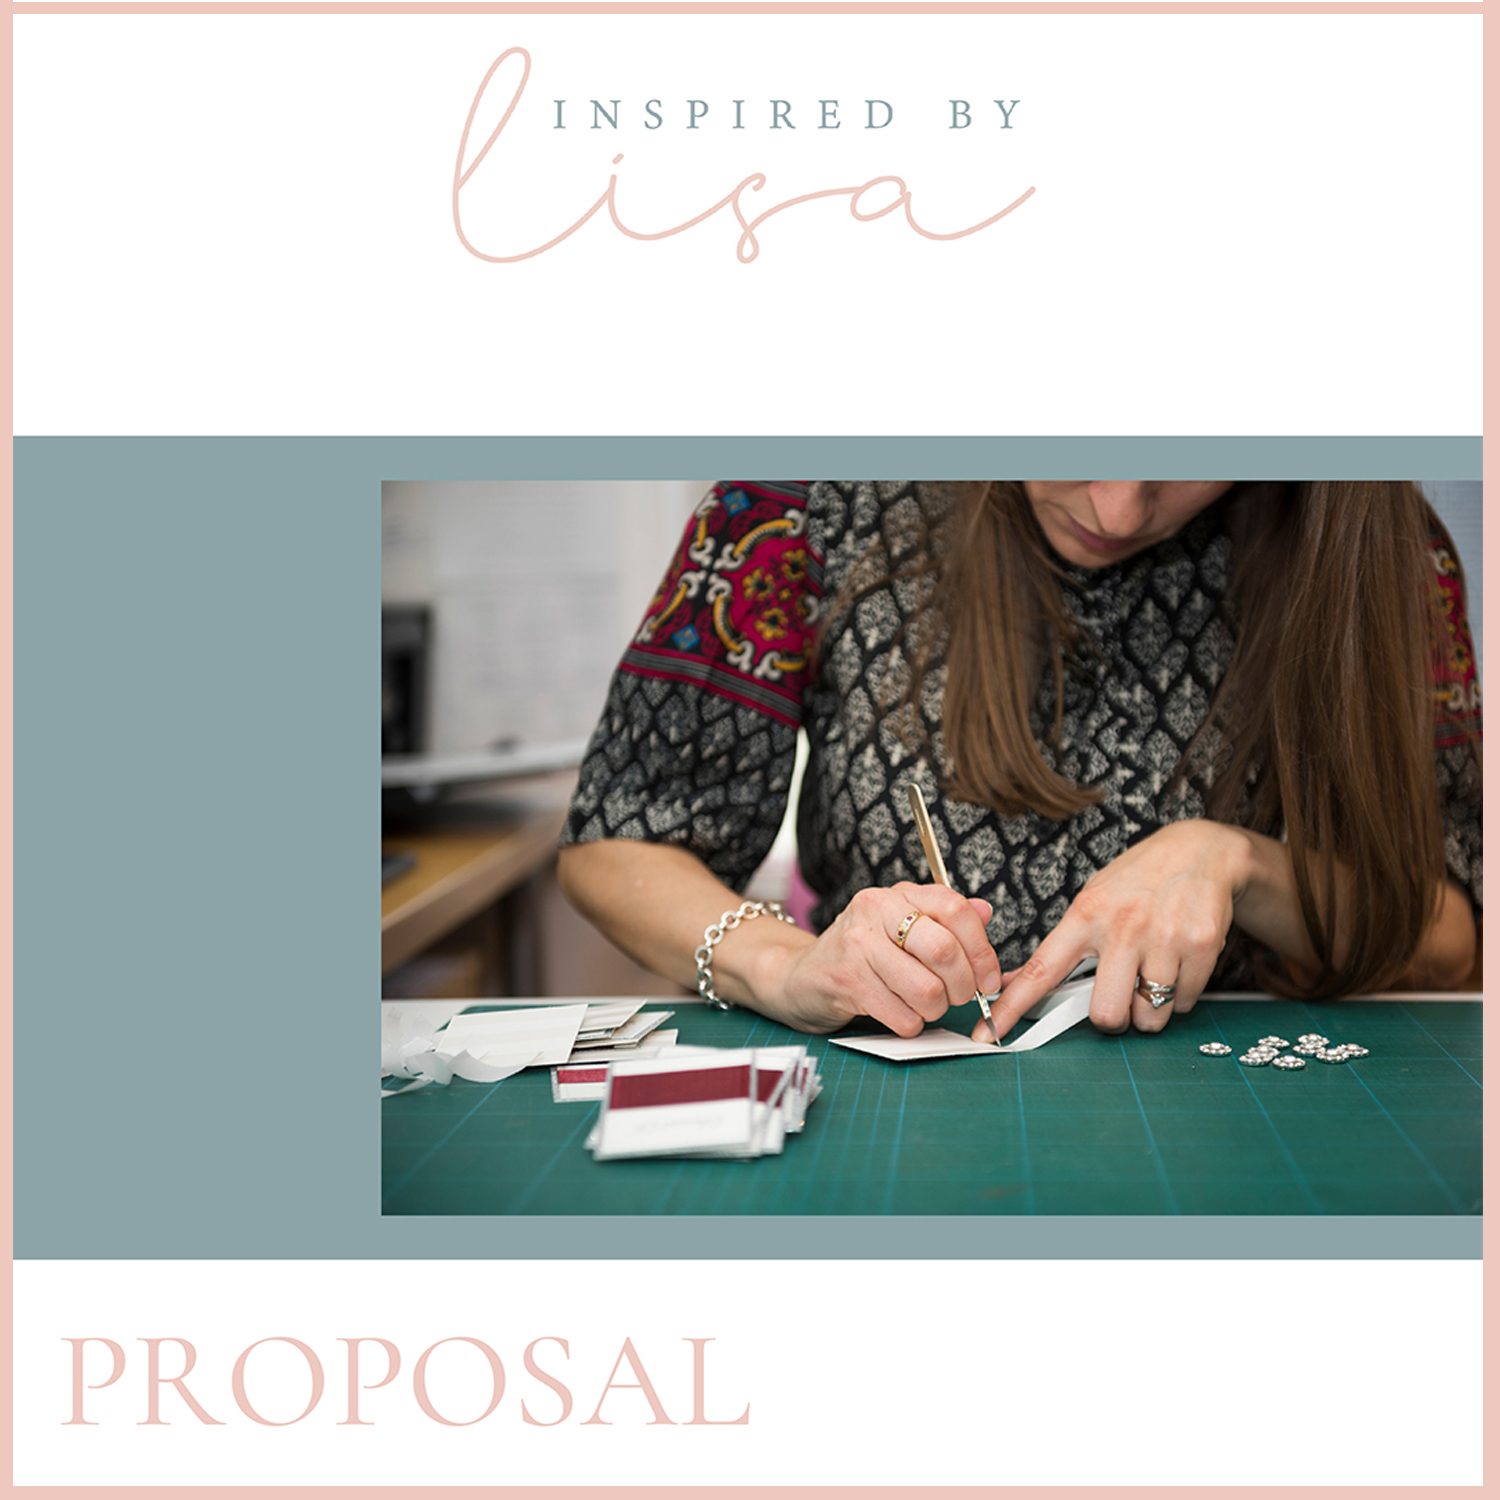 wedding invitation order proposal graphic image of hands making